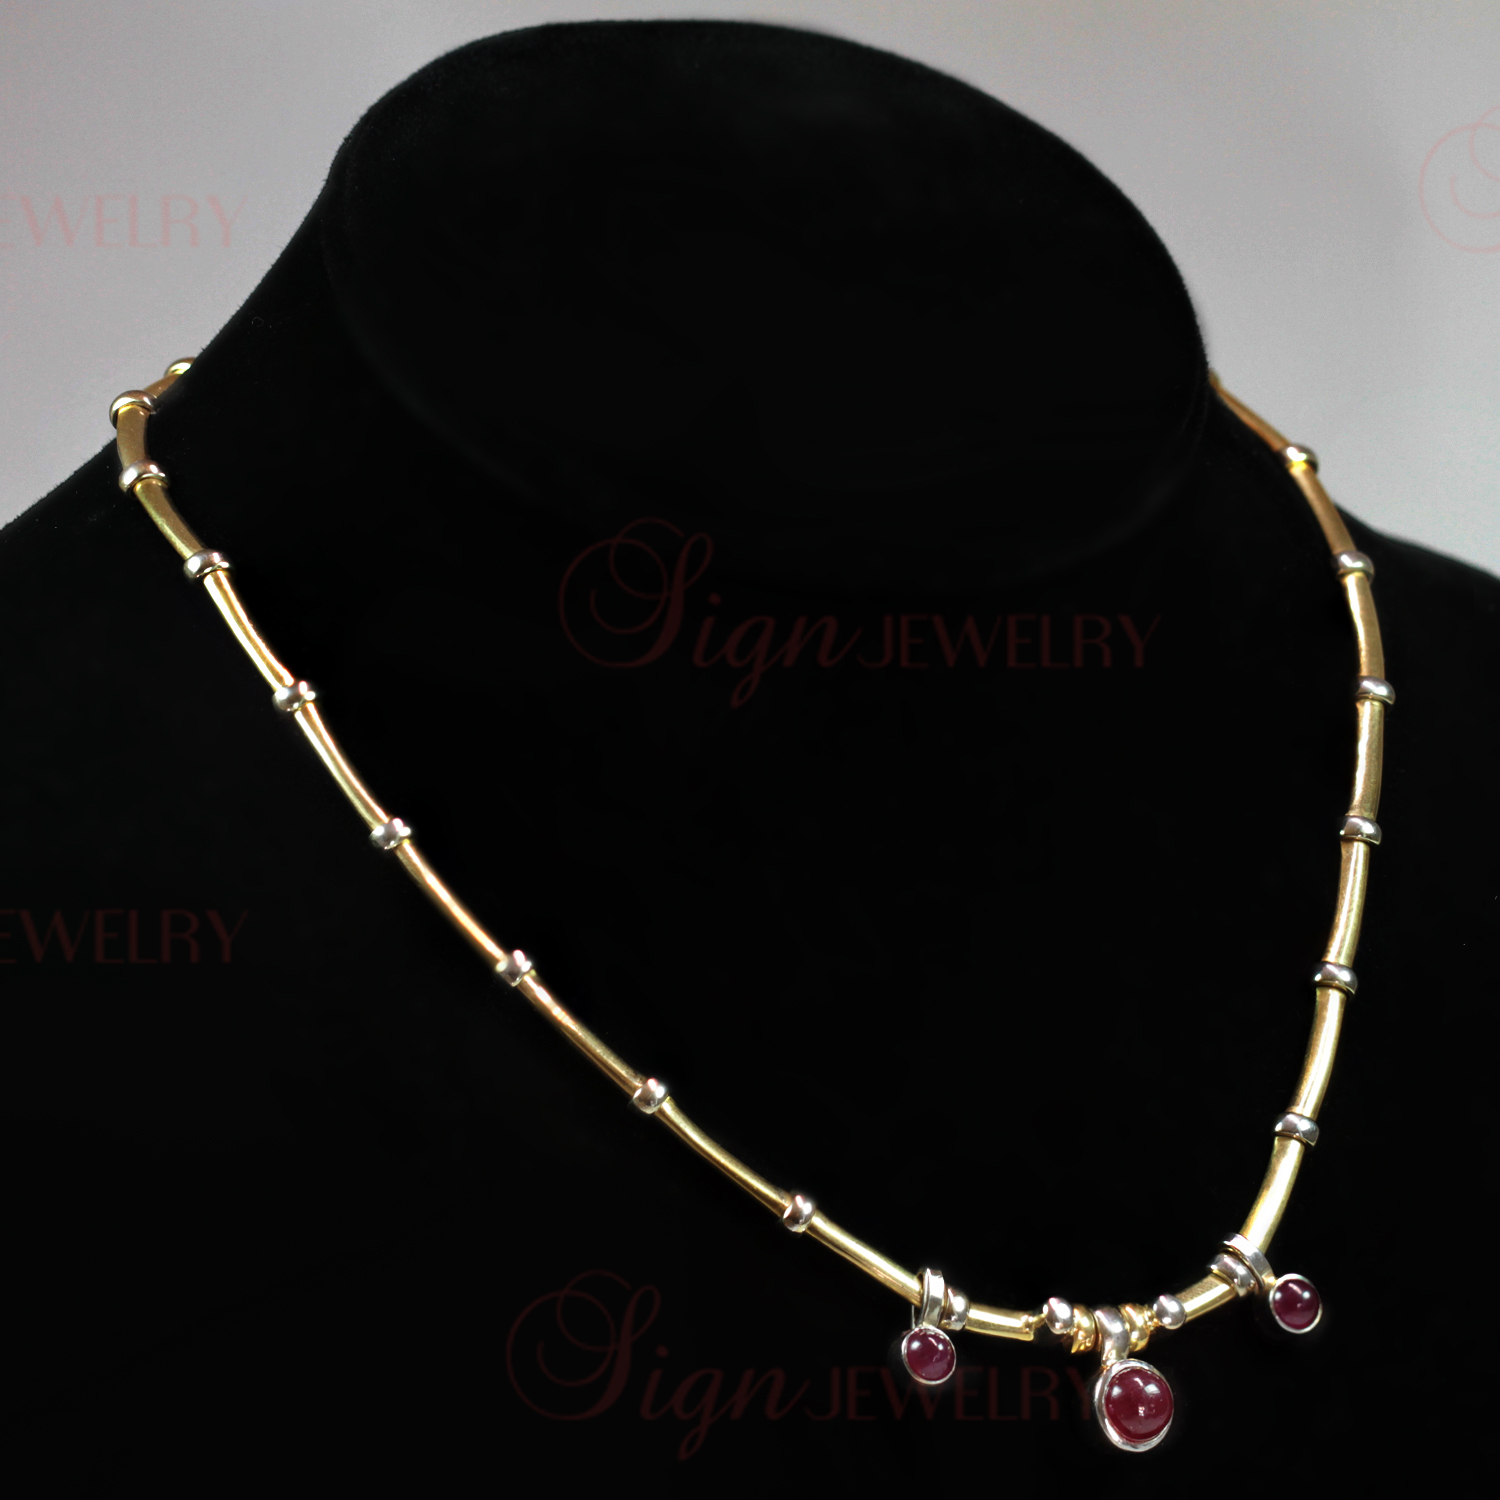 Cabochon Ruby 18k White & Yellow Gold Collar Necklace